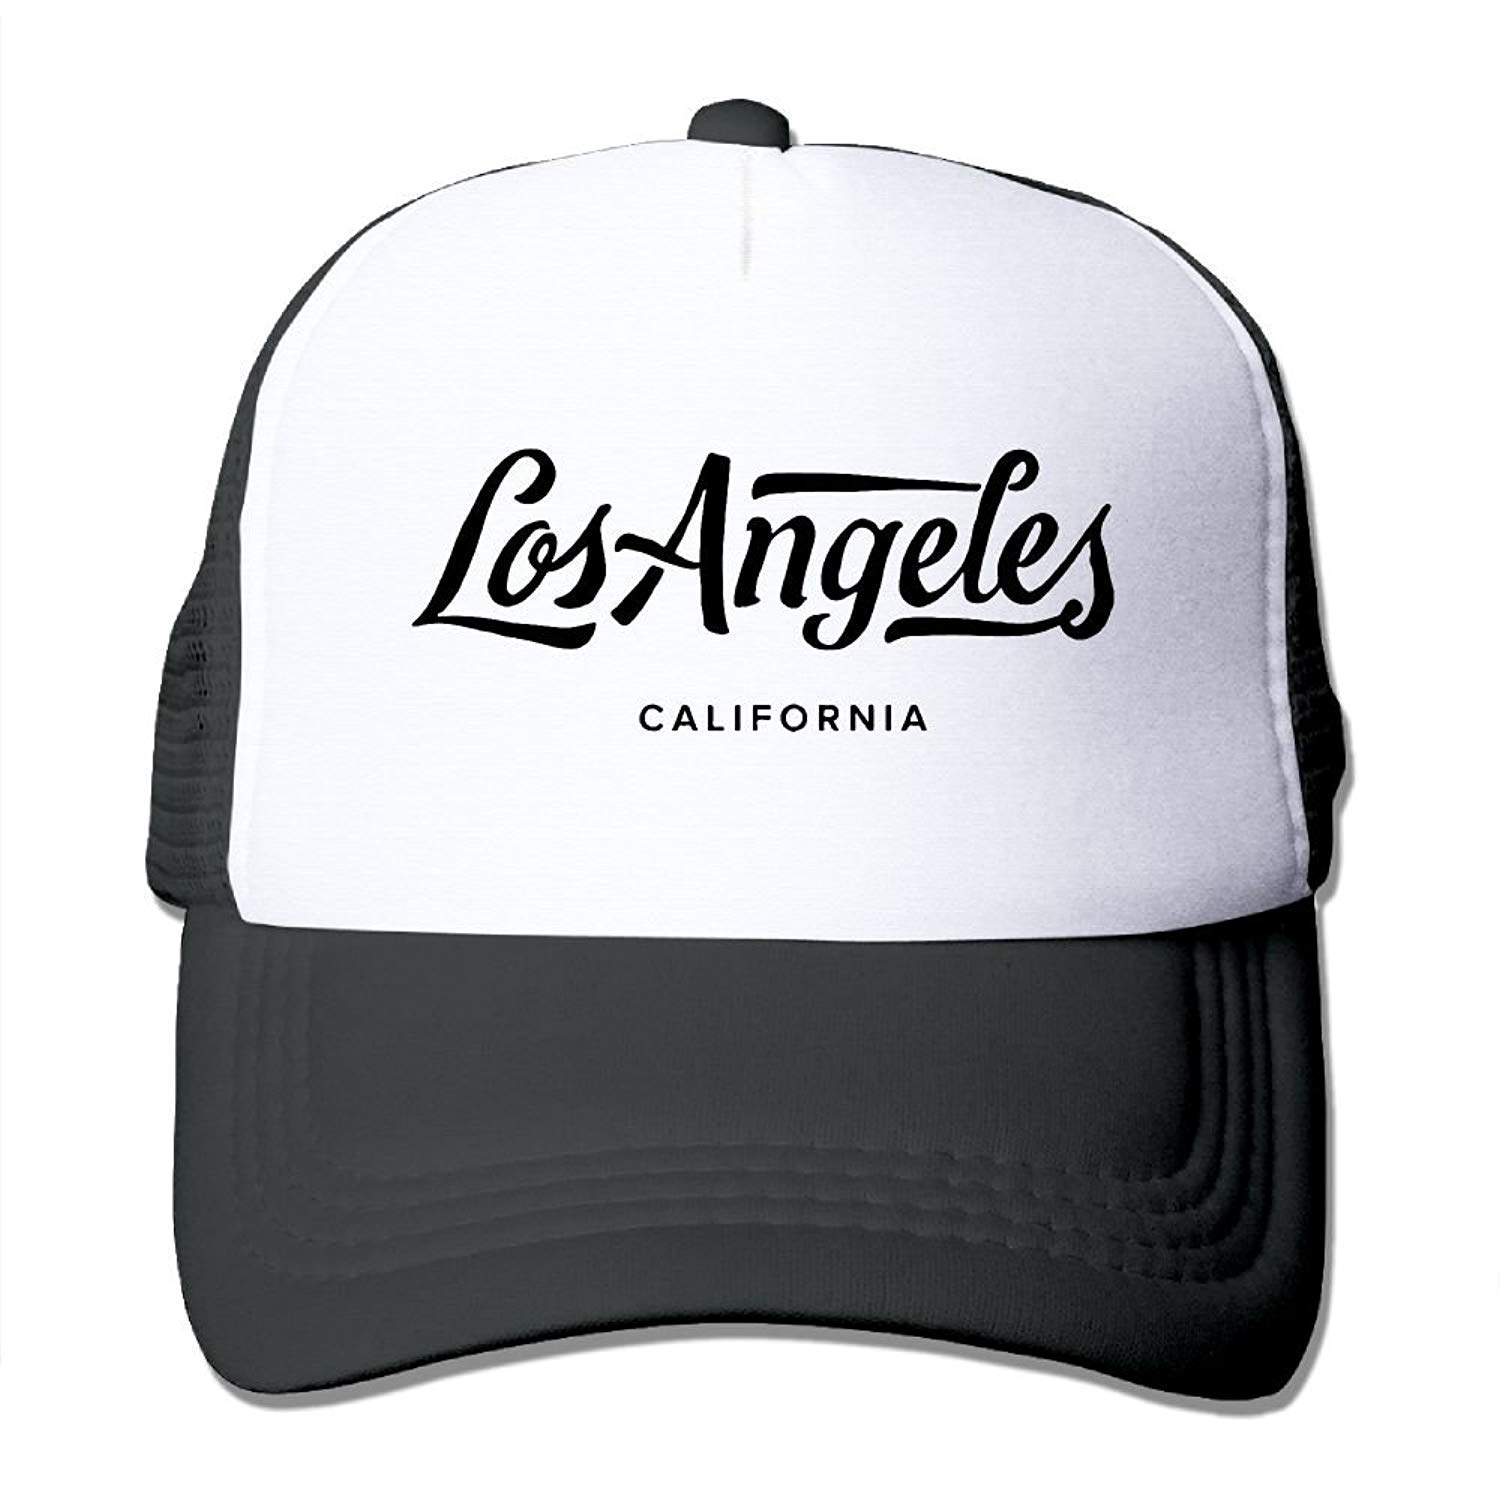 willeing Angeles California Gorras de Malla para Camionero ...